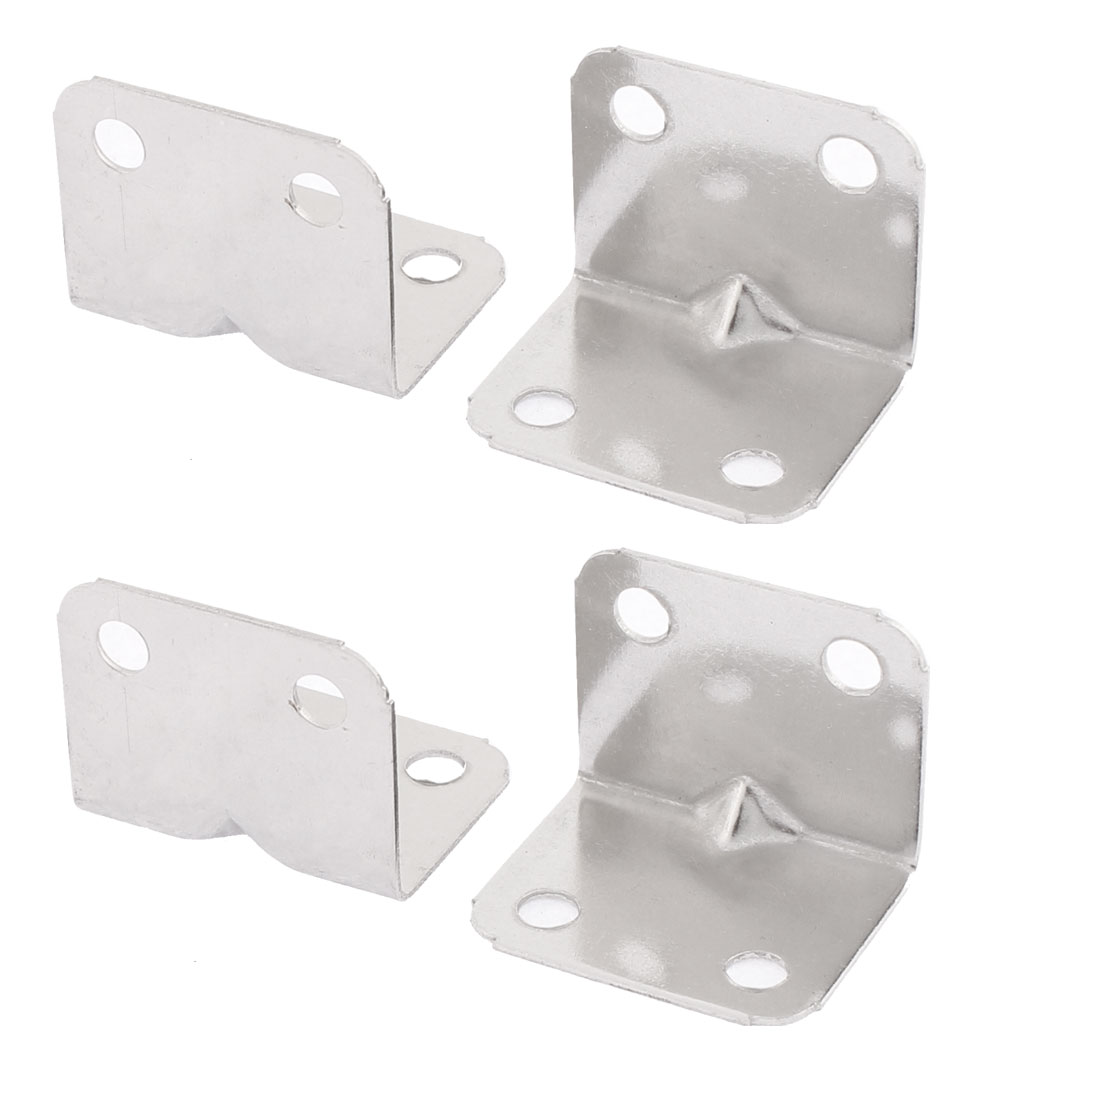 Stainless Steel Angle Brackets Support 32 x 25mm 4PCS